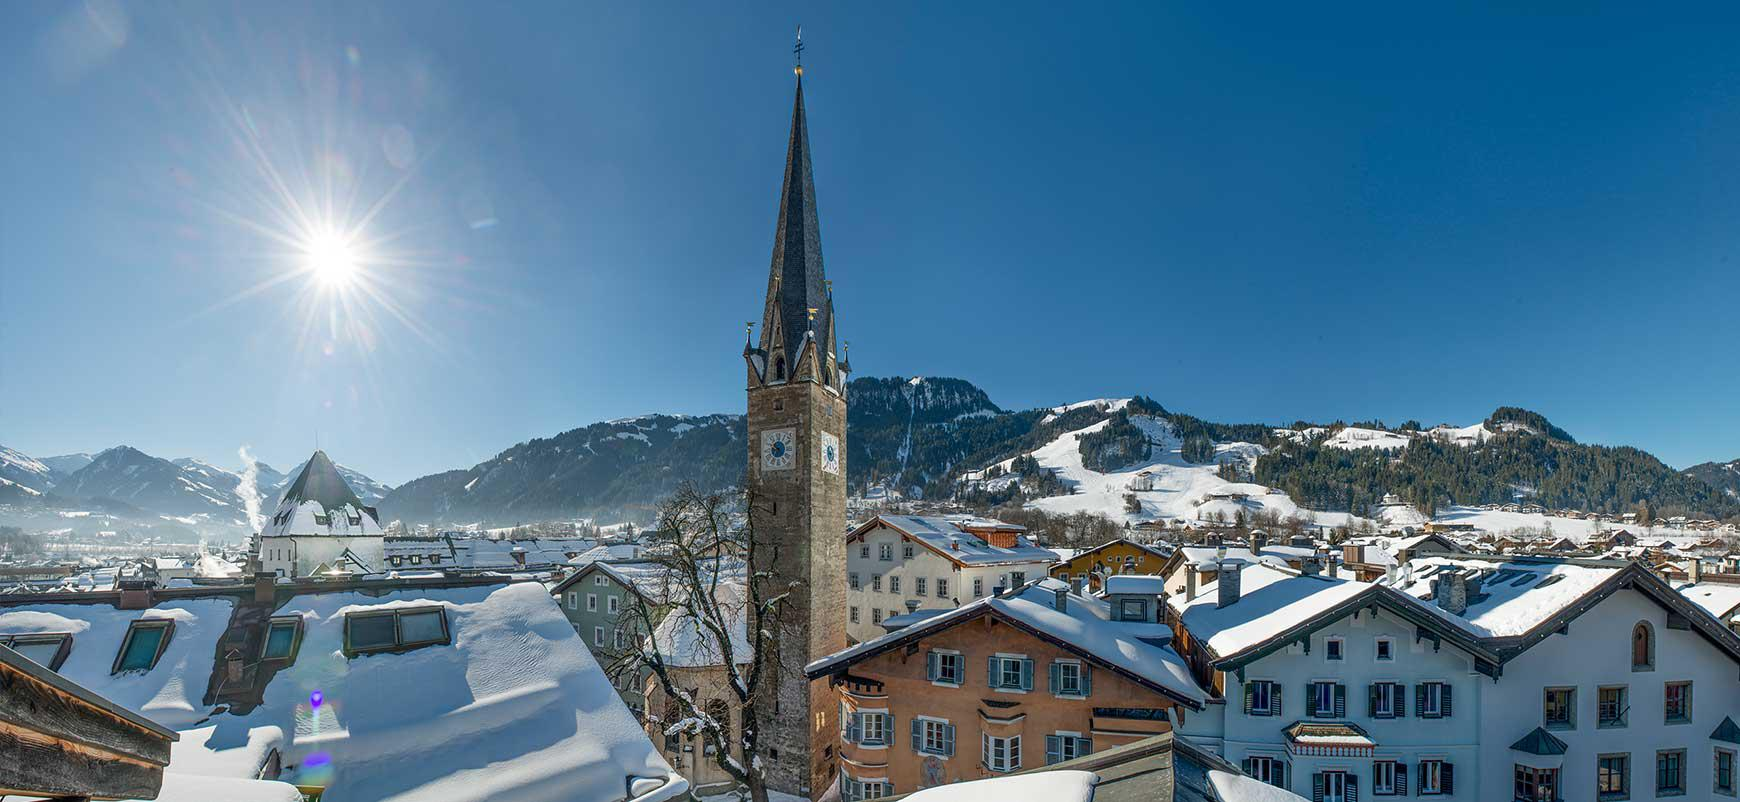 Popular Hotel in finest location in Kitzbuehel 1 - Tirol - Austria